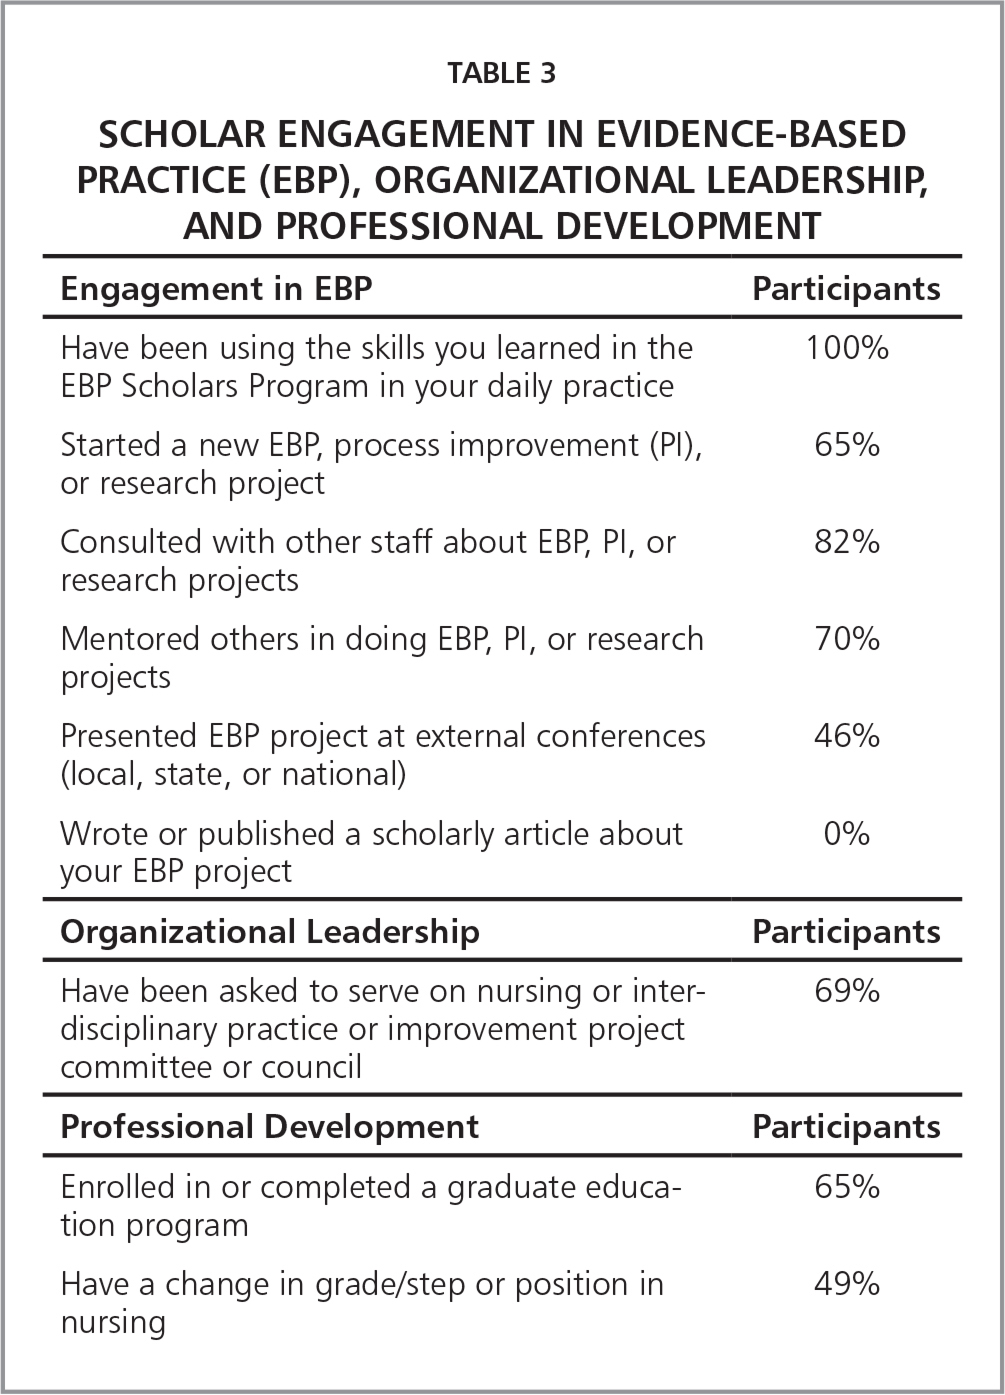 Scholar Engagement in Evidence-Based Practice (EBP), Organizational Leadership, and Professional Development